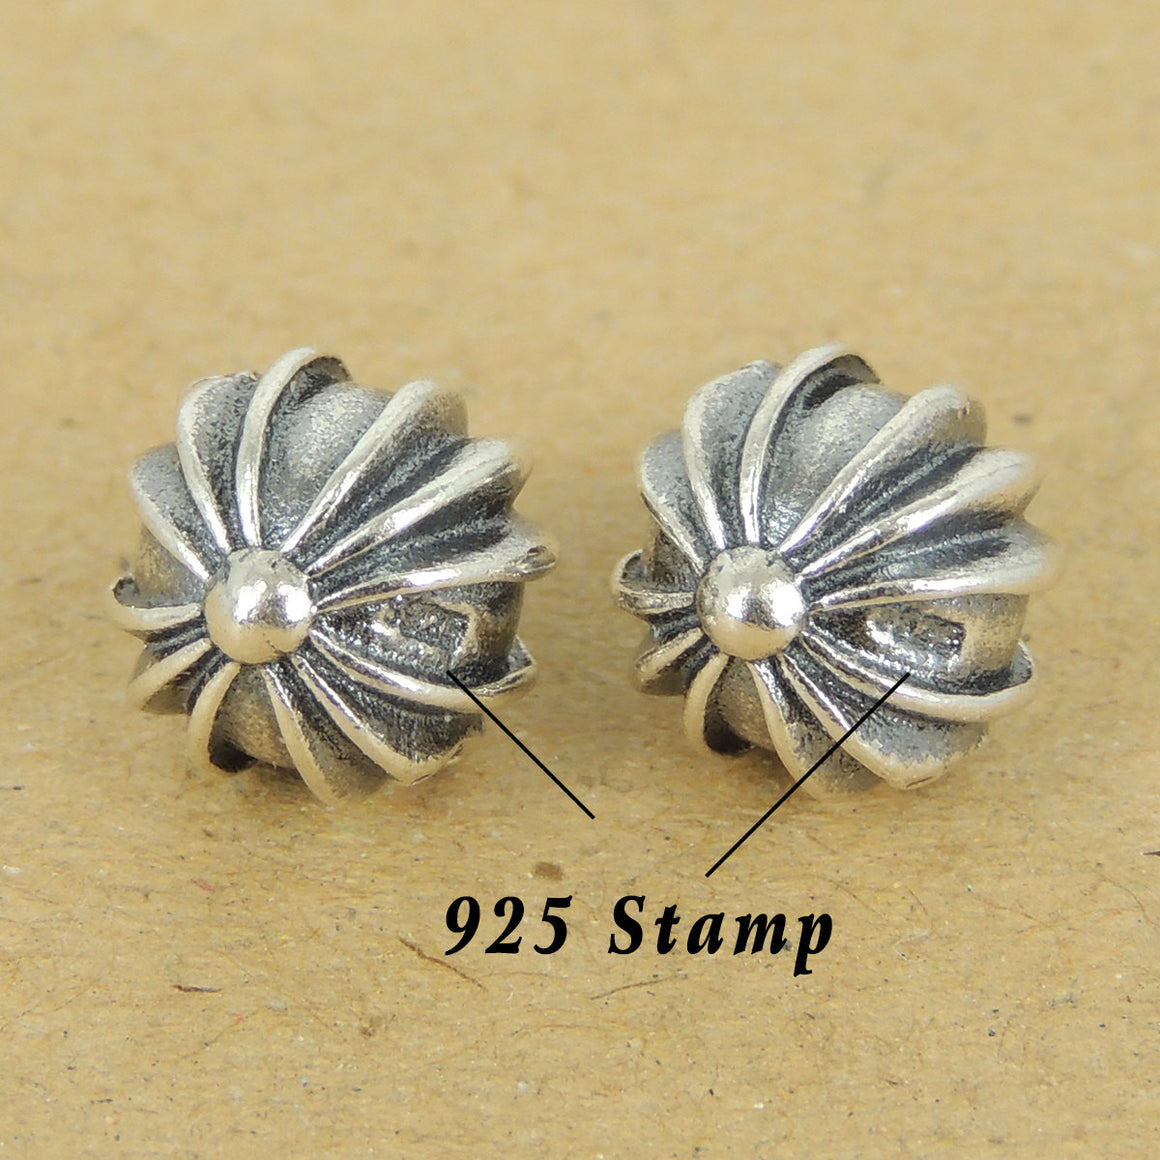 2PCS Celtic Cross Beads - S925 Sterling Silver - Wholesale by Gem & Silver WSP429X2